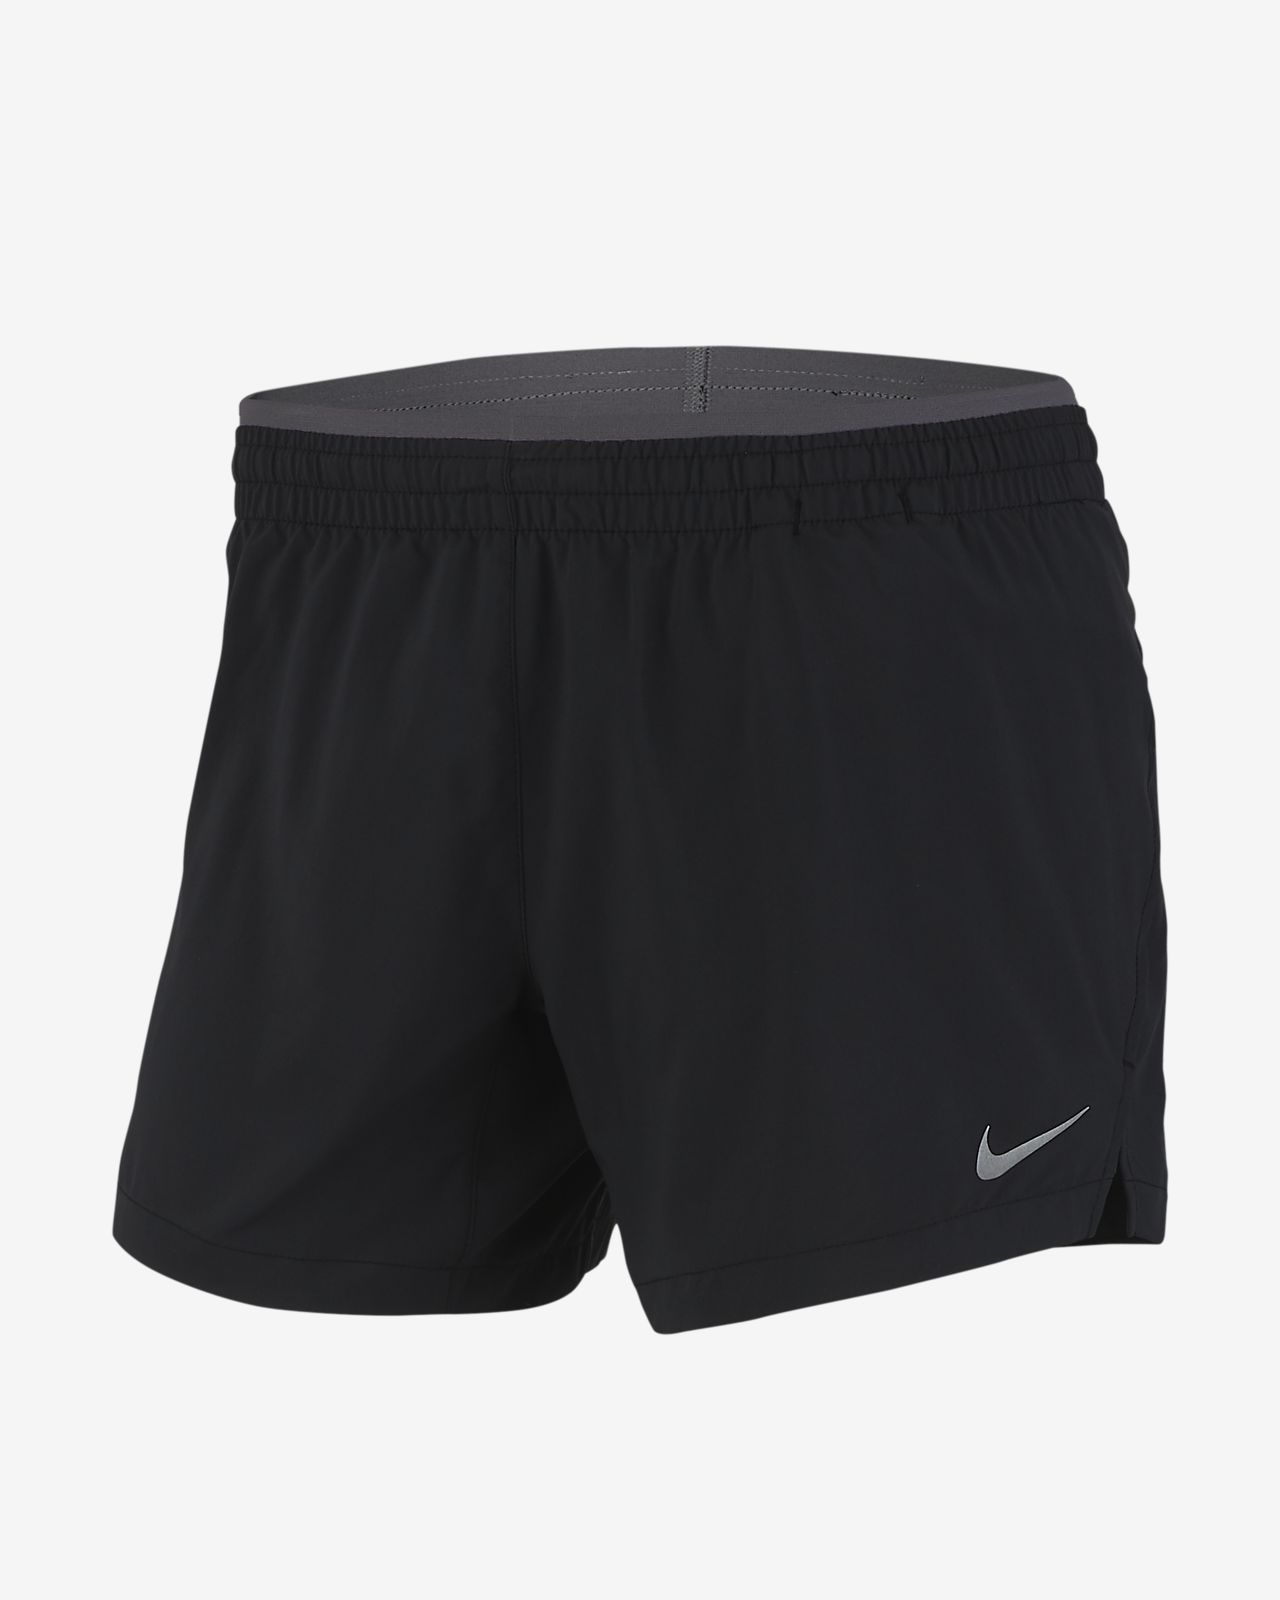 Nike Elevate løpeshorts for dame (12,5 cm)